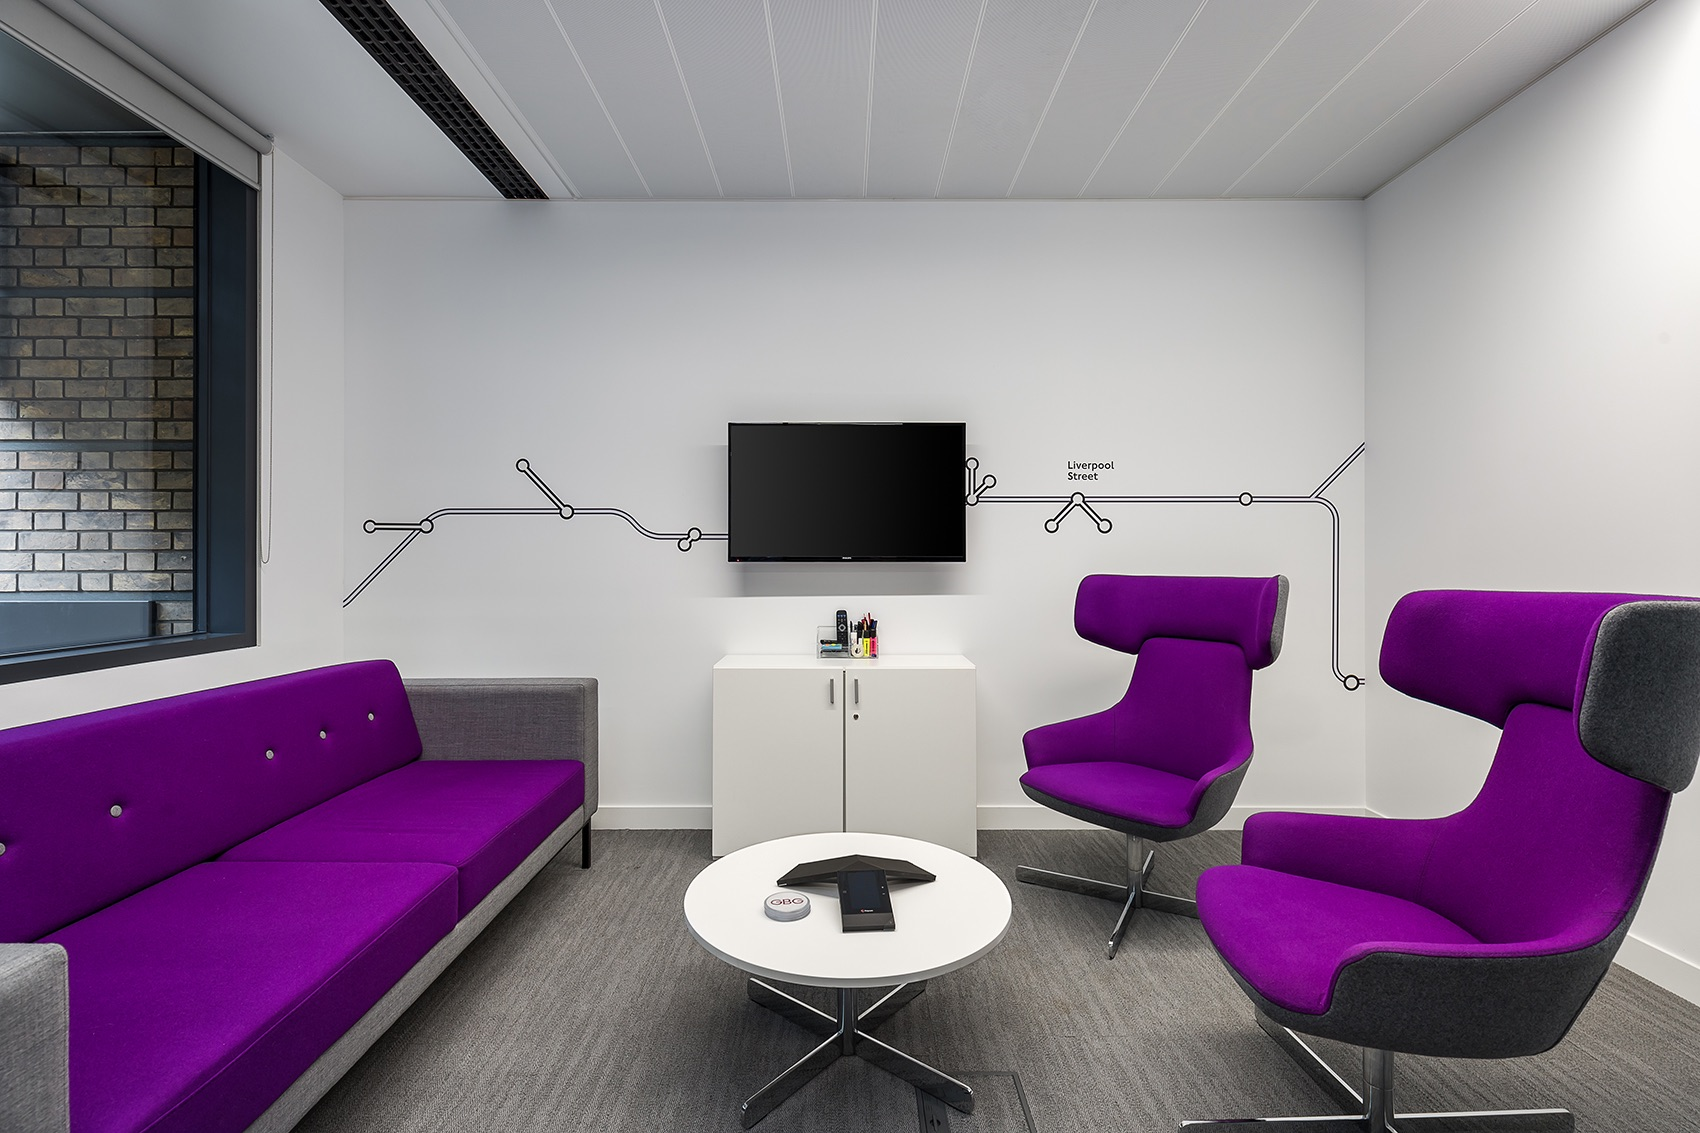 gbgroup-london-office-5